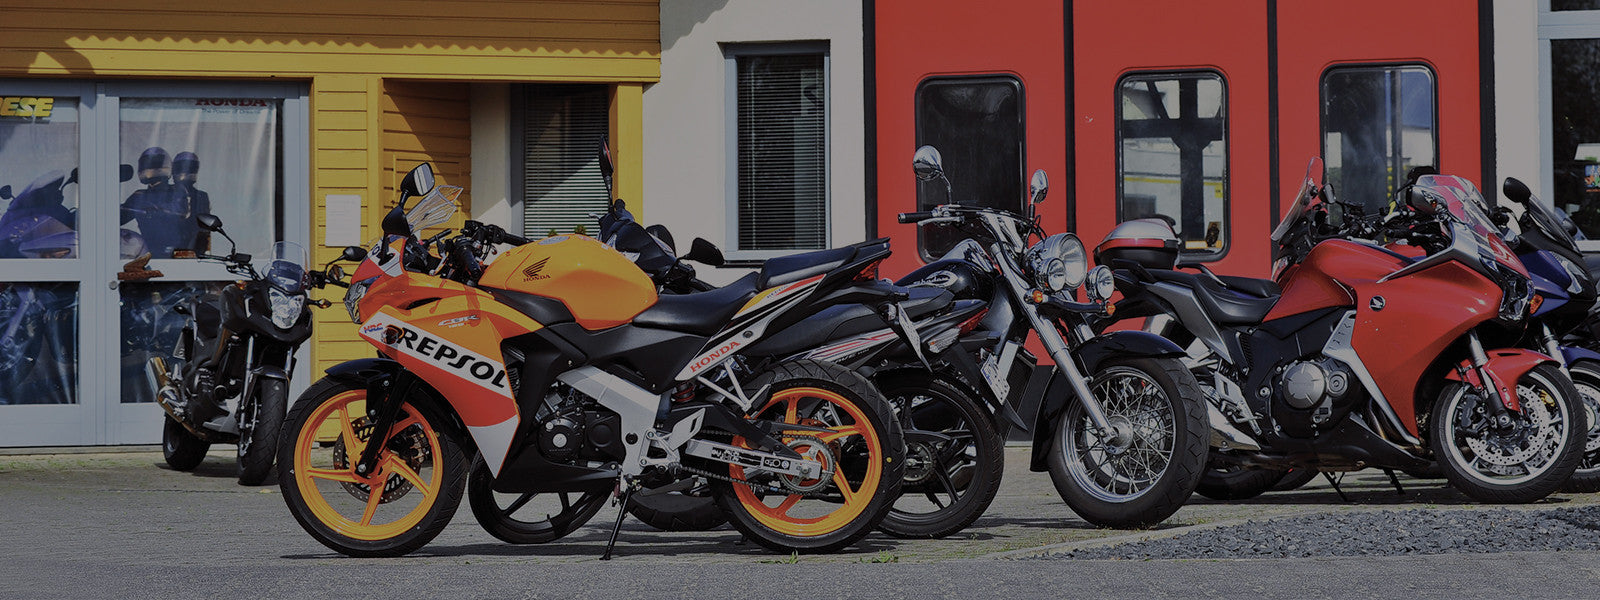 AFTERMARKET FAIRINGS - OEM QUALITY